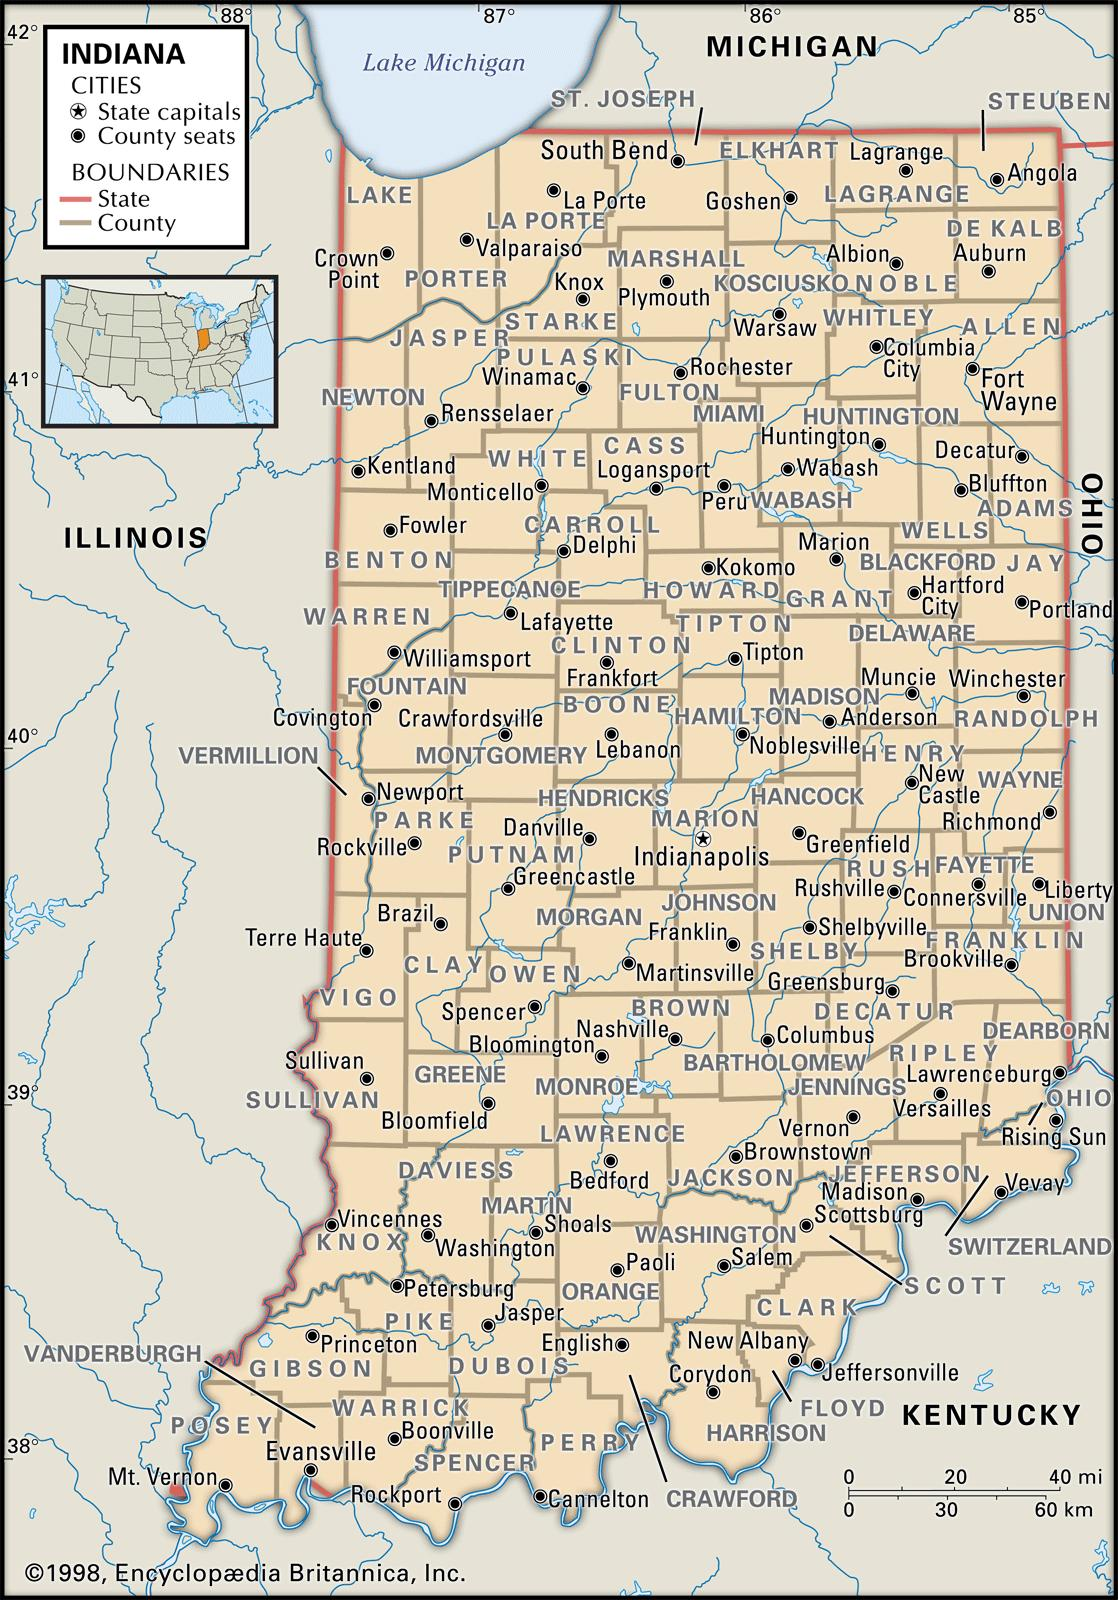 State and County Maps of Indiana on ma state map, ne state map, usa state map, indiana state physical map, california state map, florida state map, ecu state map, ari state map, wis state map, indiana state parks map, vol state map, new york state physical map, wyo state map, ny state map, indiana's state map, state of iowa county map, indiana and illinois state map, northern indiana state map, big indiana state map, indiana state city map,